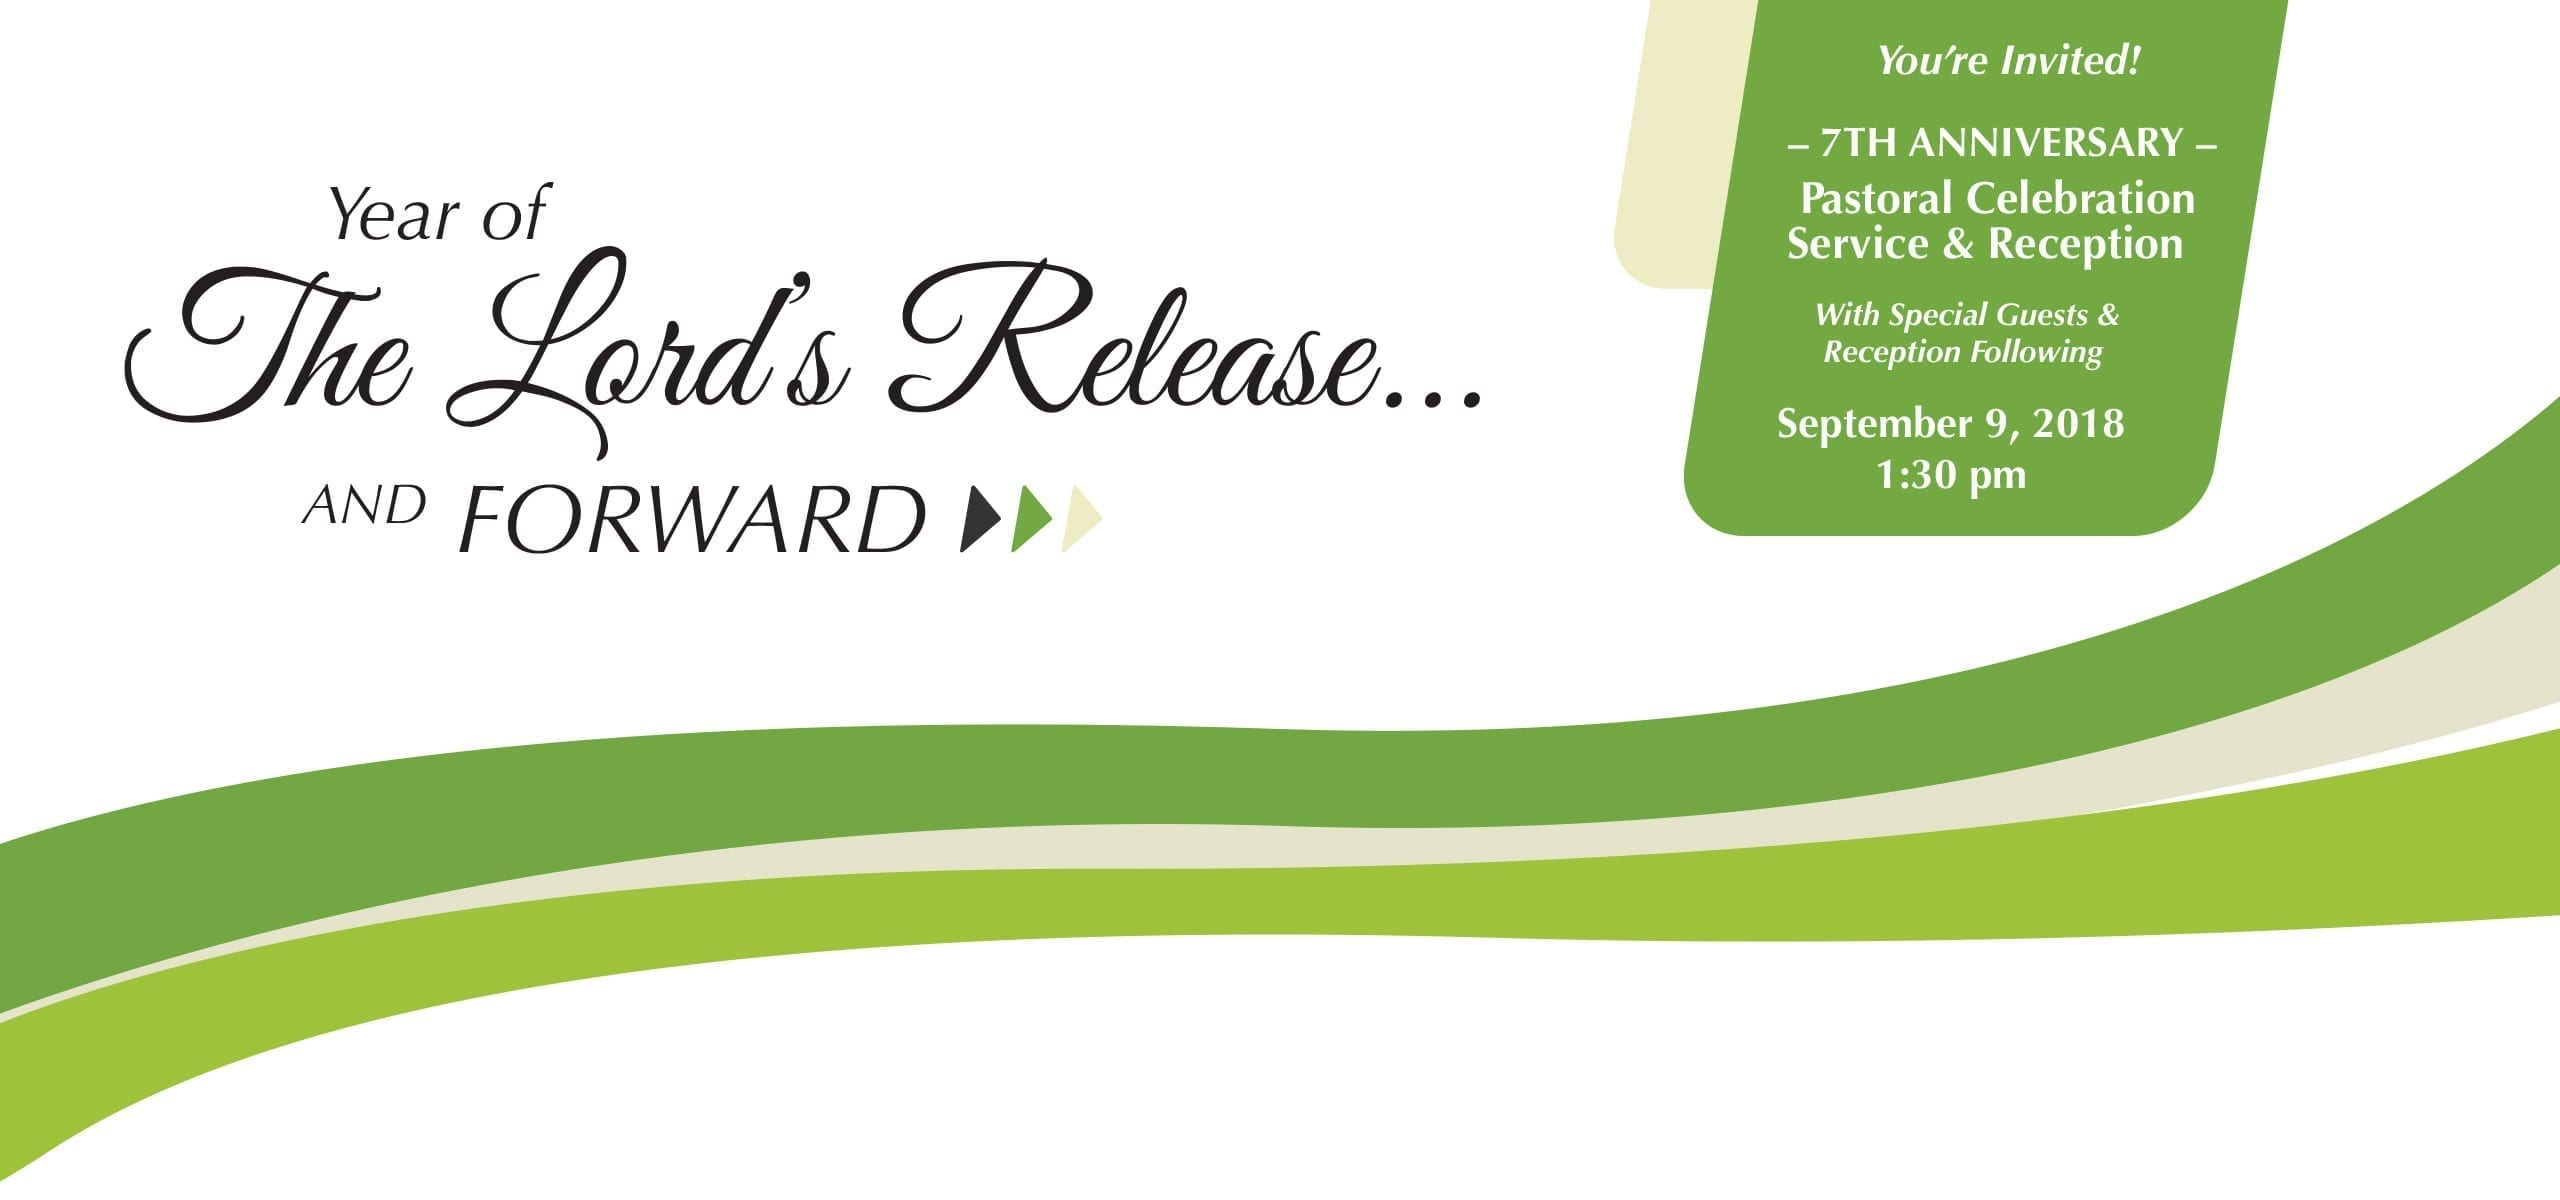 Seventh Anniversary The Year of the Lord's Release - Christ Community Church The Pentecostals - Henderson, TN